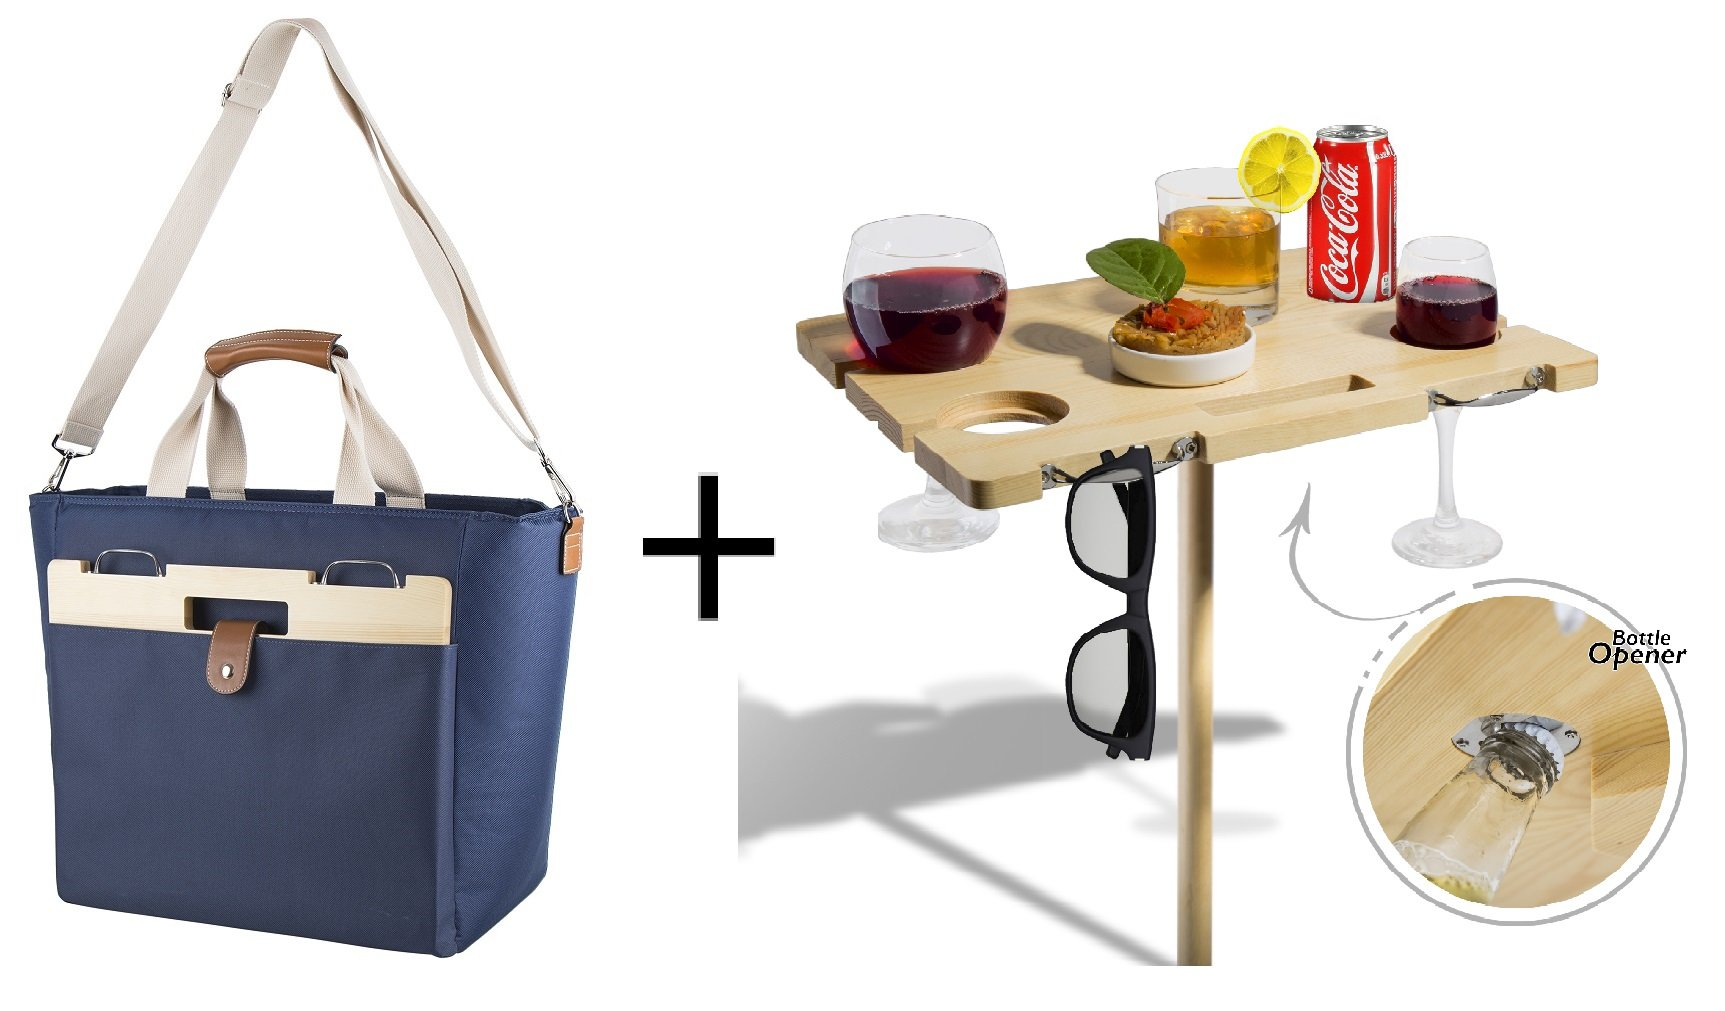 LeSac Fashion Insulated Party Cooler Bag with Wine Bottle Sections and Fold-able Outdoor Bamboo Wine Picnic Table for Outdoor Concerts, Beach, Picnic Adventures. Perfect Holiday Gift for Everyone